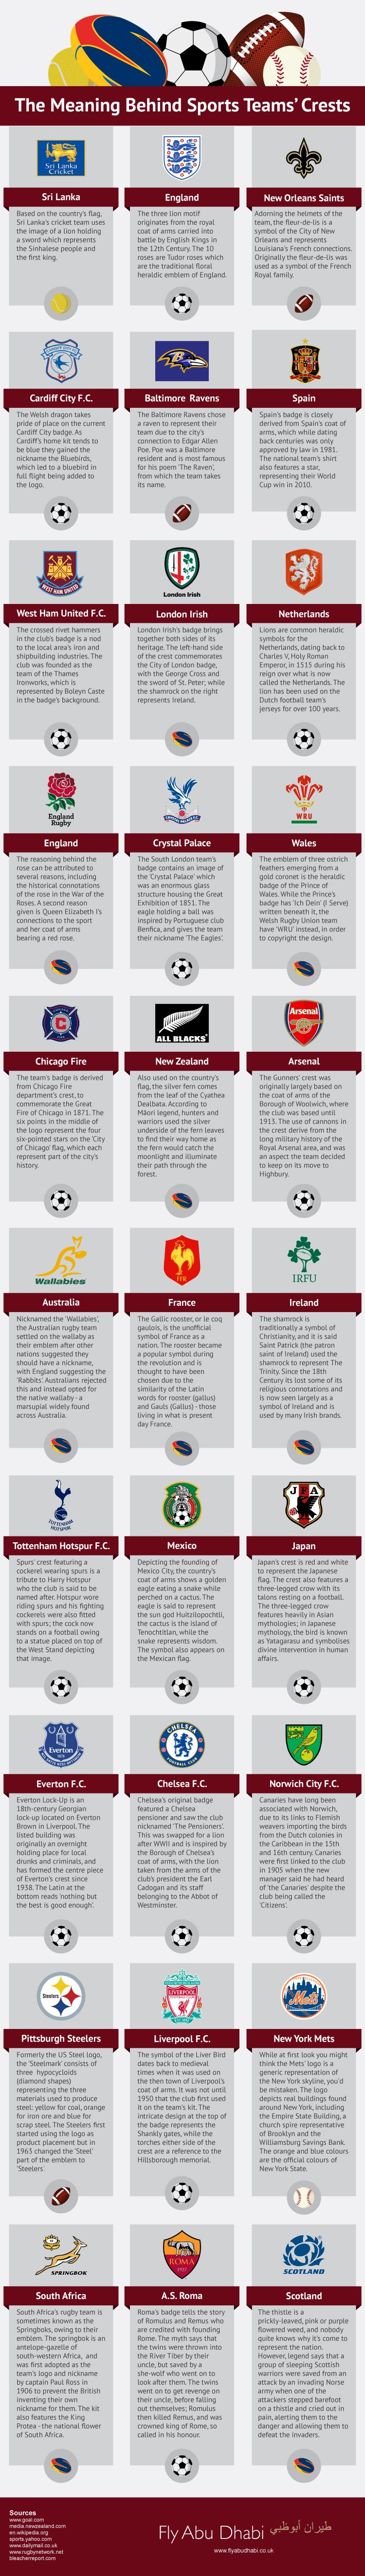 The Meaning Behind Sports Teams' Crests